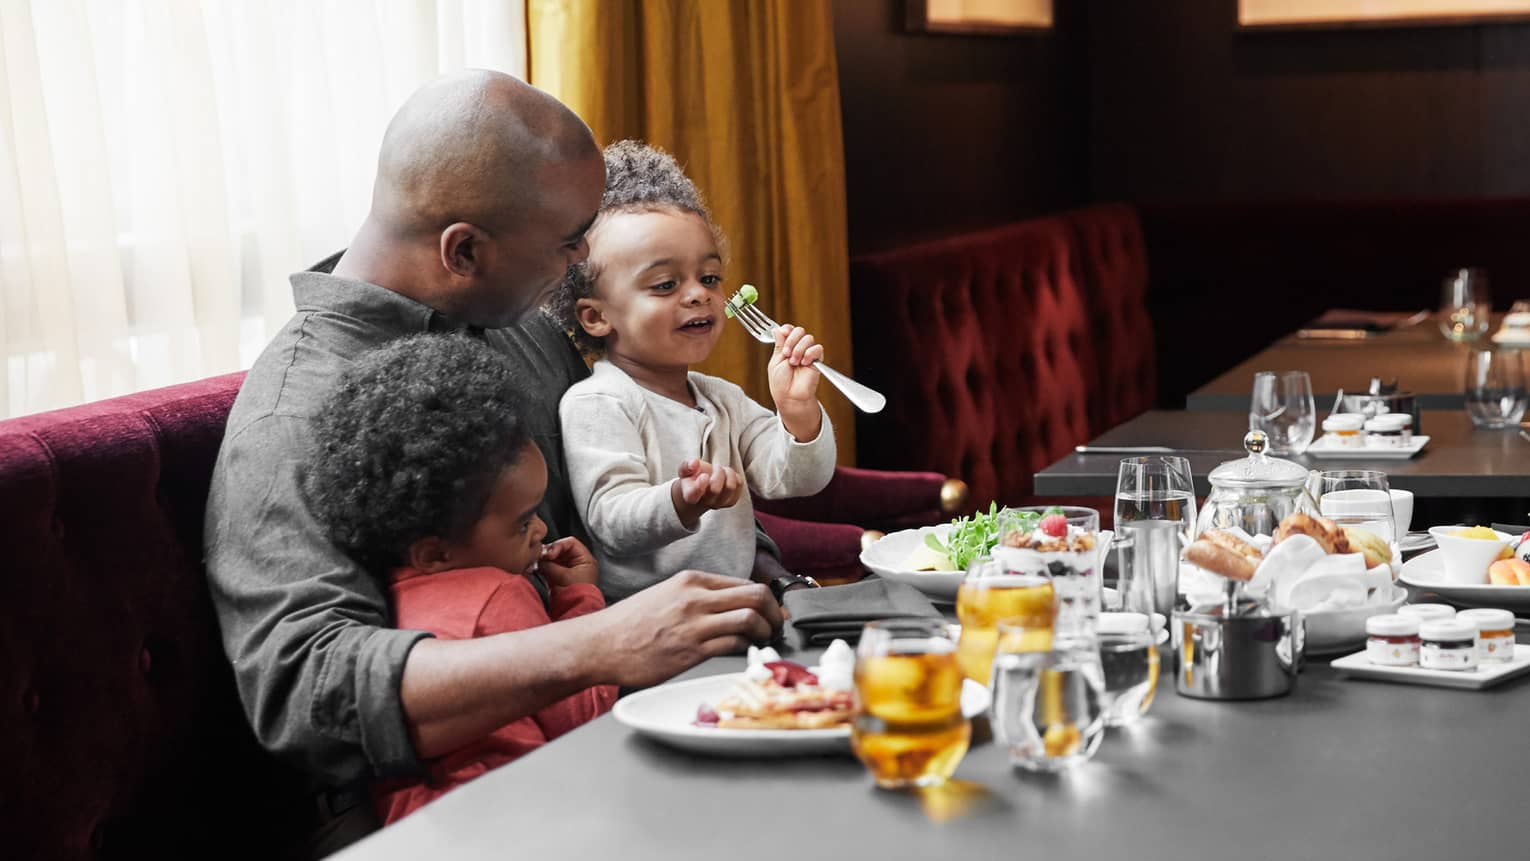 Father eating with his two young children at dining table